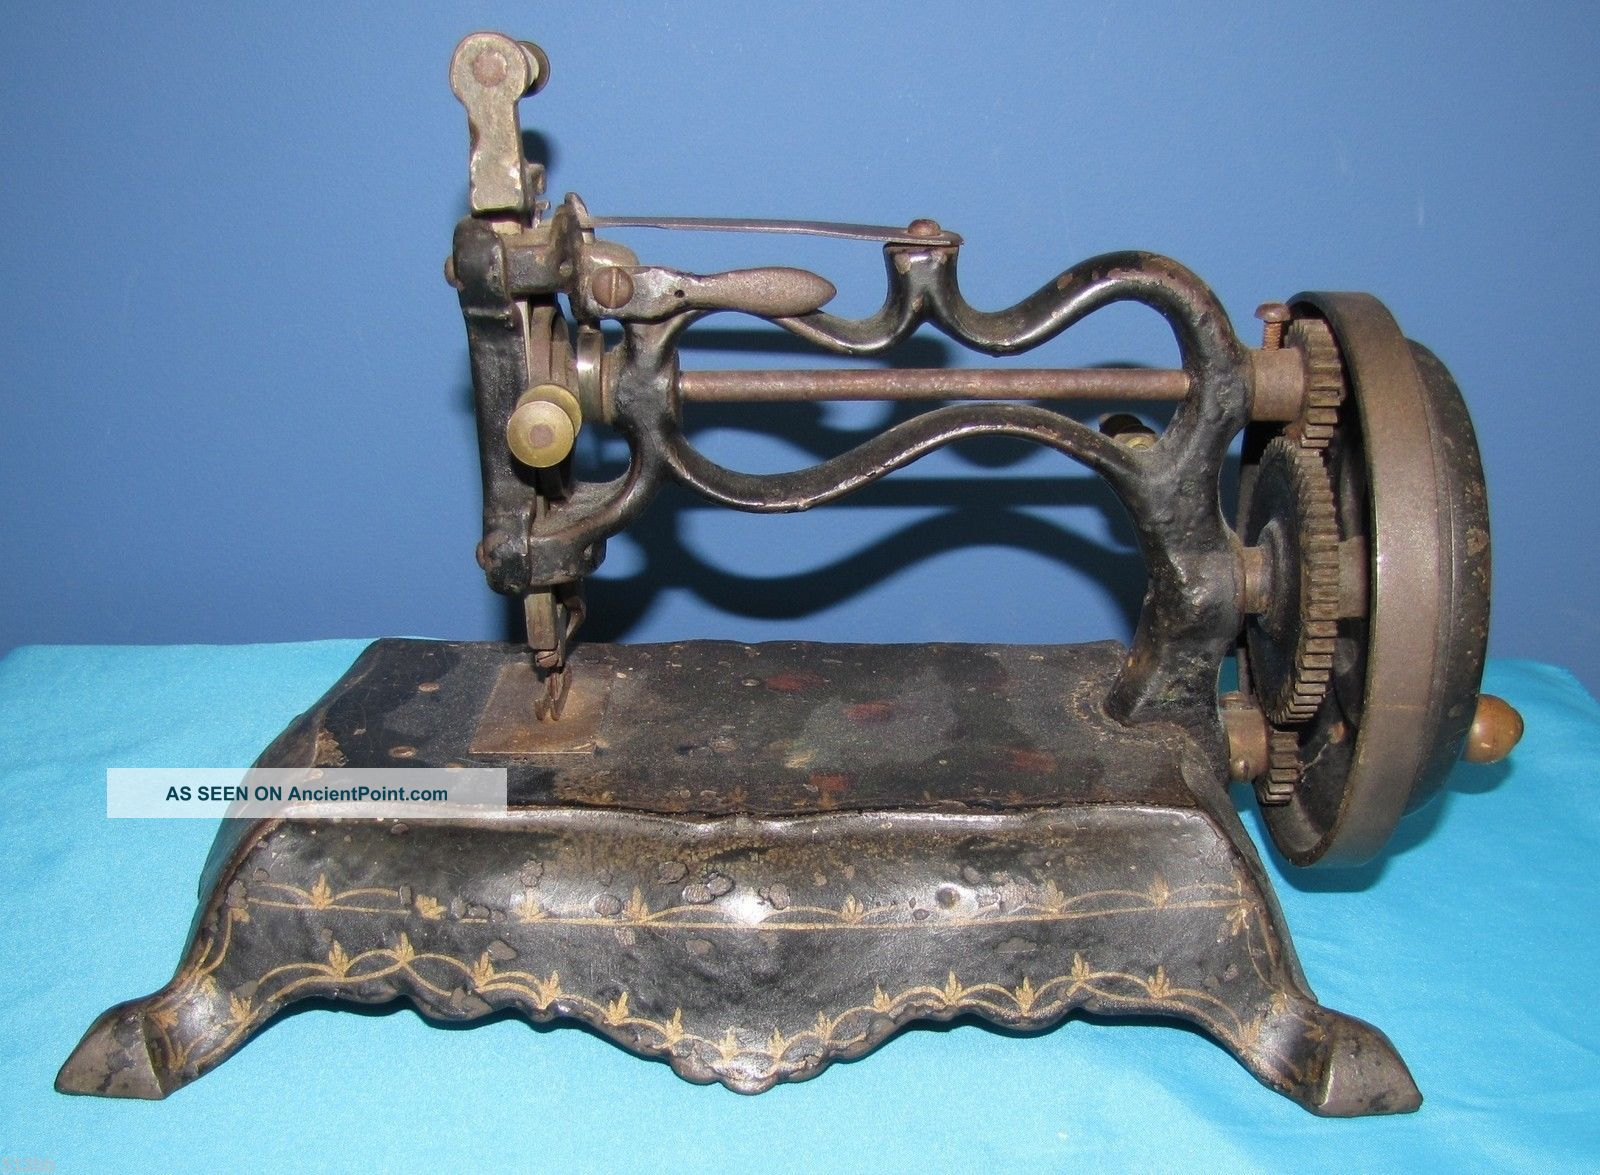 Antique Vintage Paw Foot Sewing Machine England Style Hand Painted Sewing Machines photo